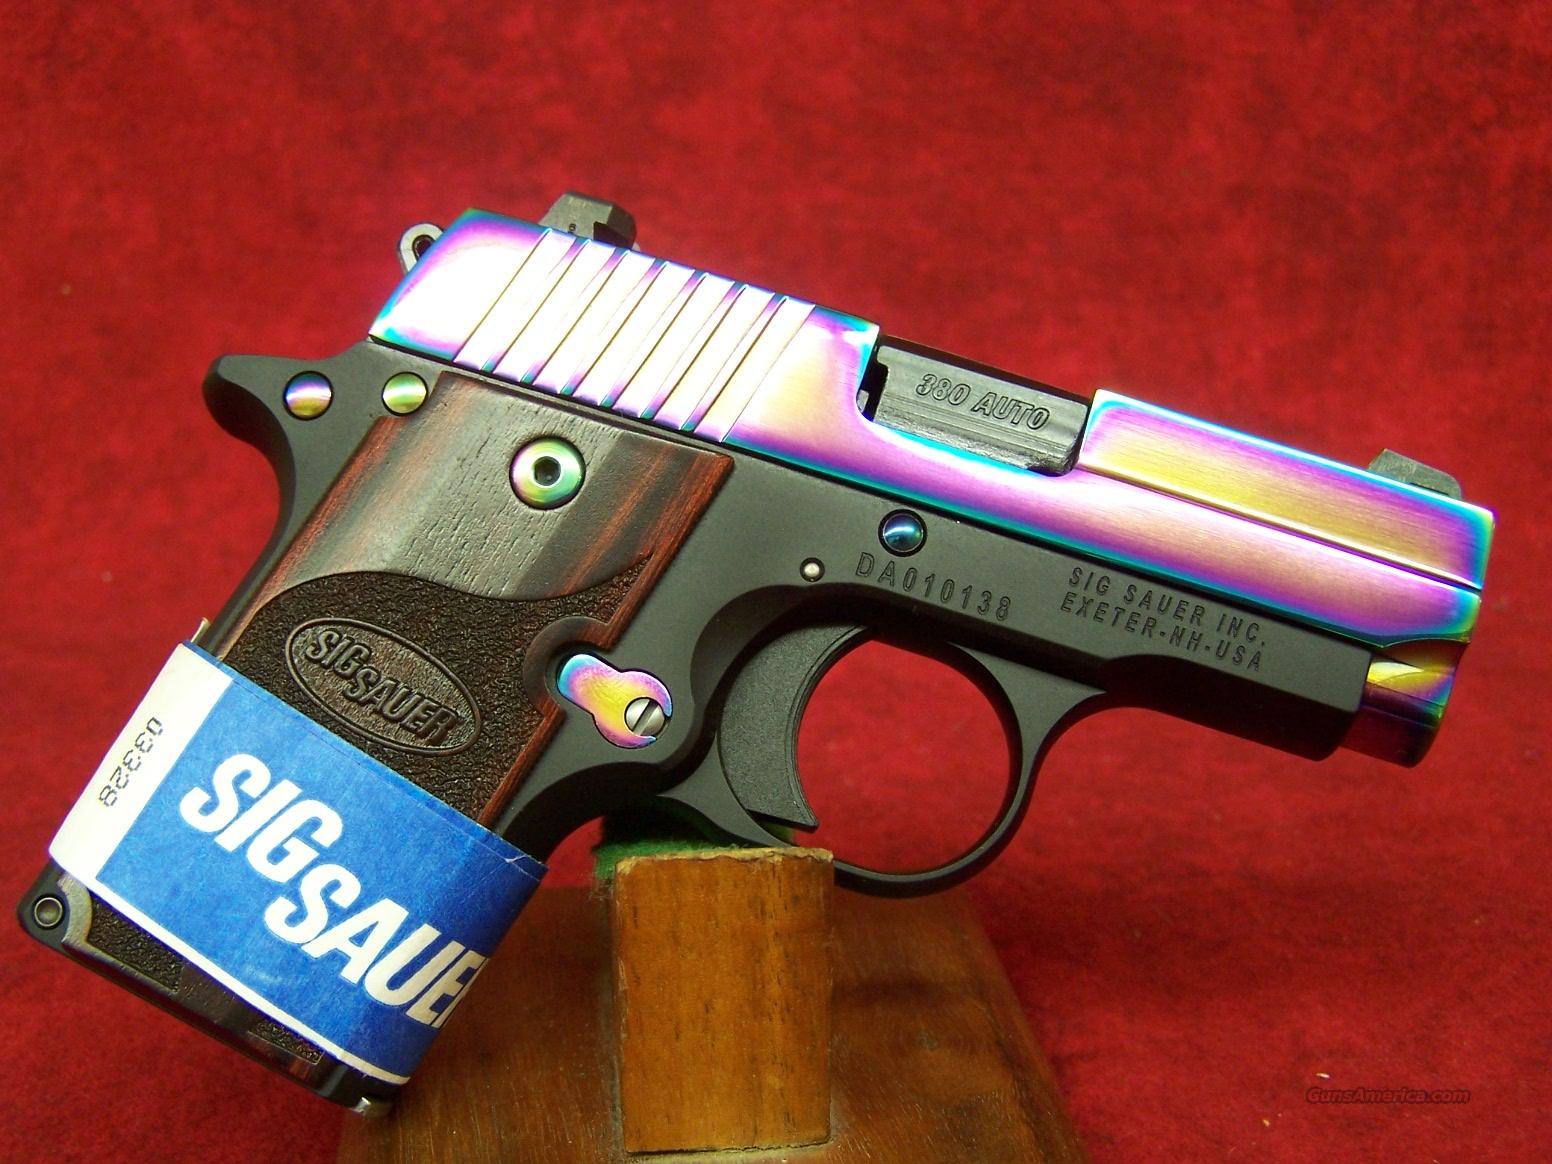 SIG SAUER P238 .380 ACP Rainbow Titanium with Rosewood Grips(238-380-RBT)  Guns > Pistols > Sig - Sauer/Sigarms Pistols > Other